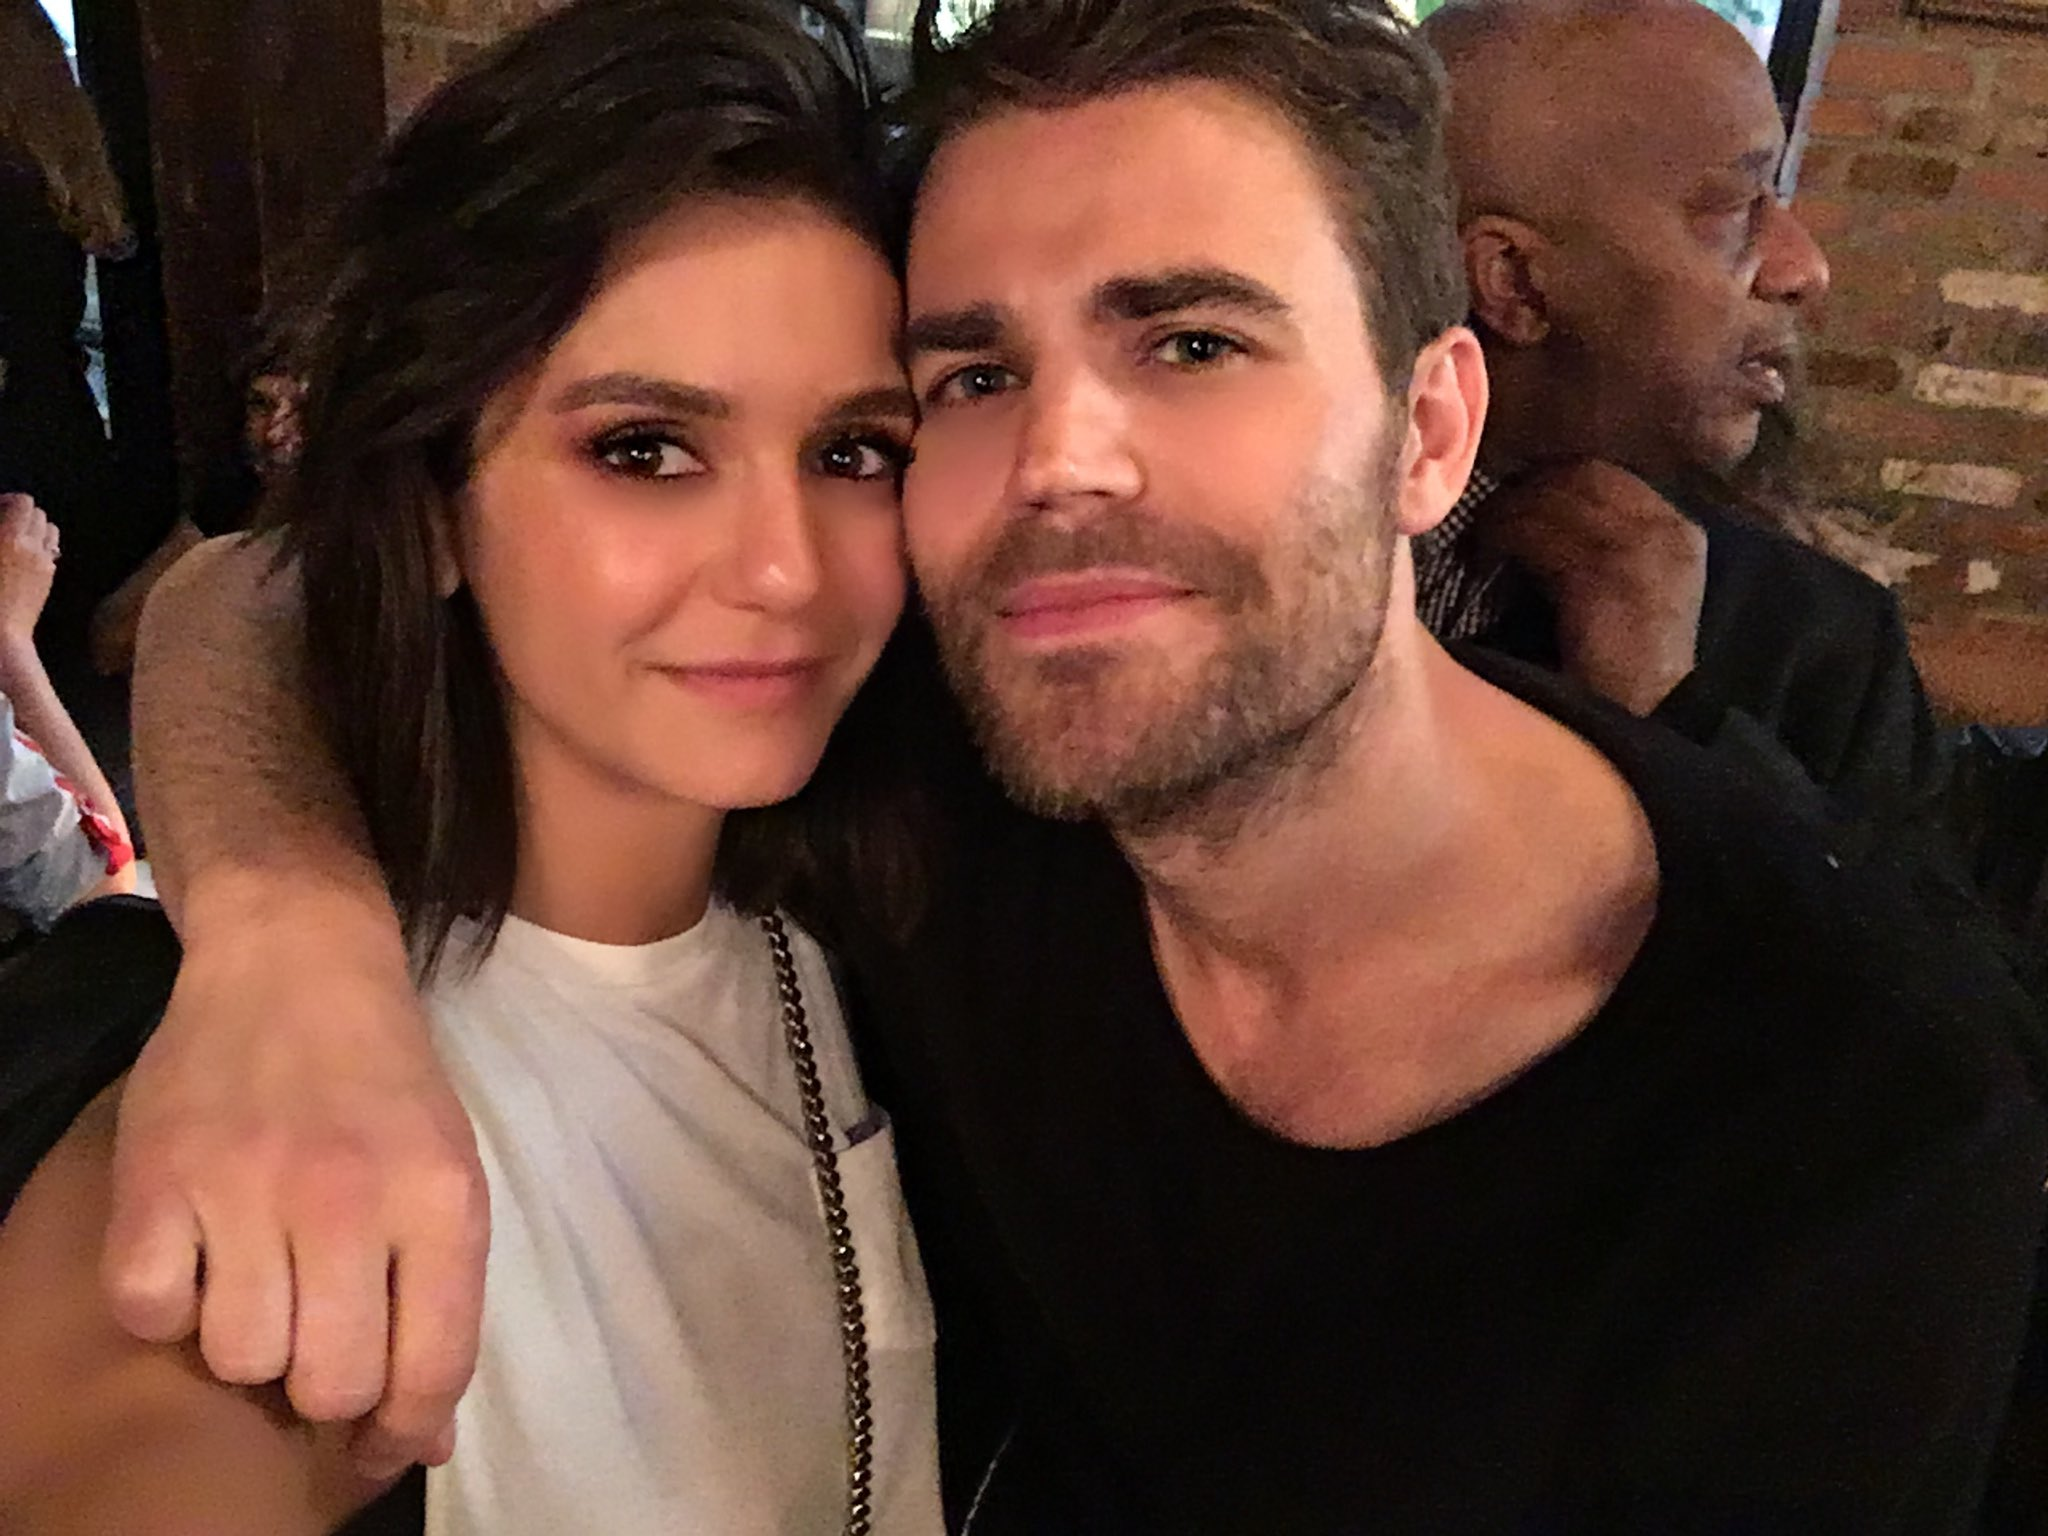 Ran into this guy who looks exactly like my old costar @paulwesley ! Wait... https://t.co/Q4DjwJ1LlG